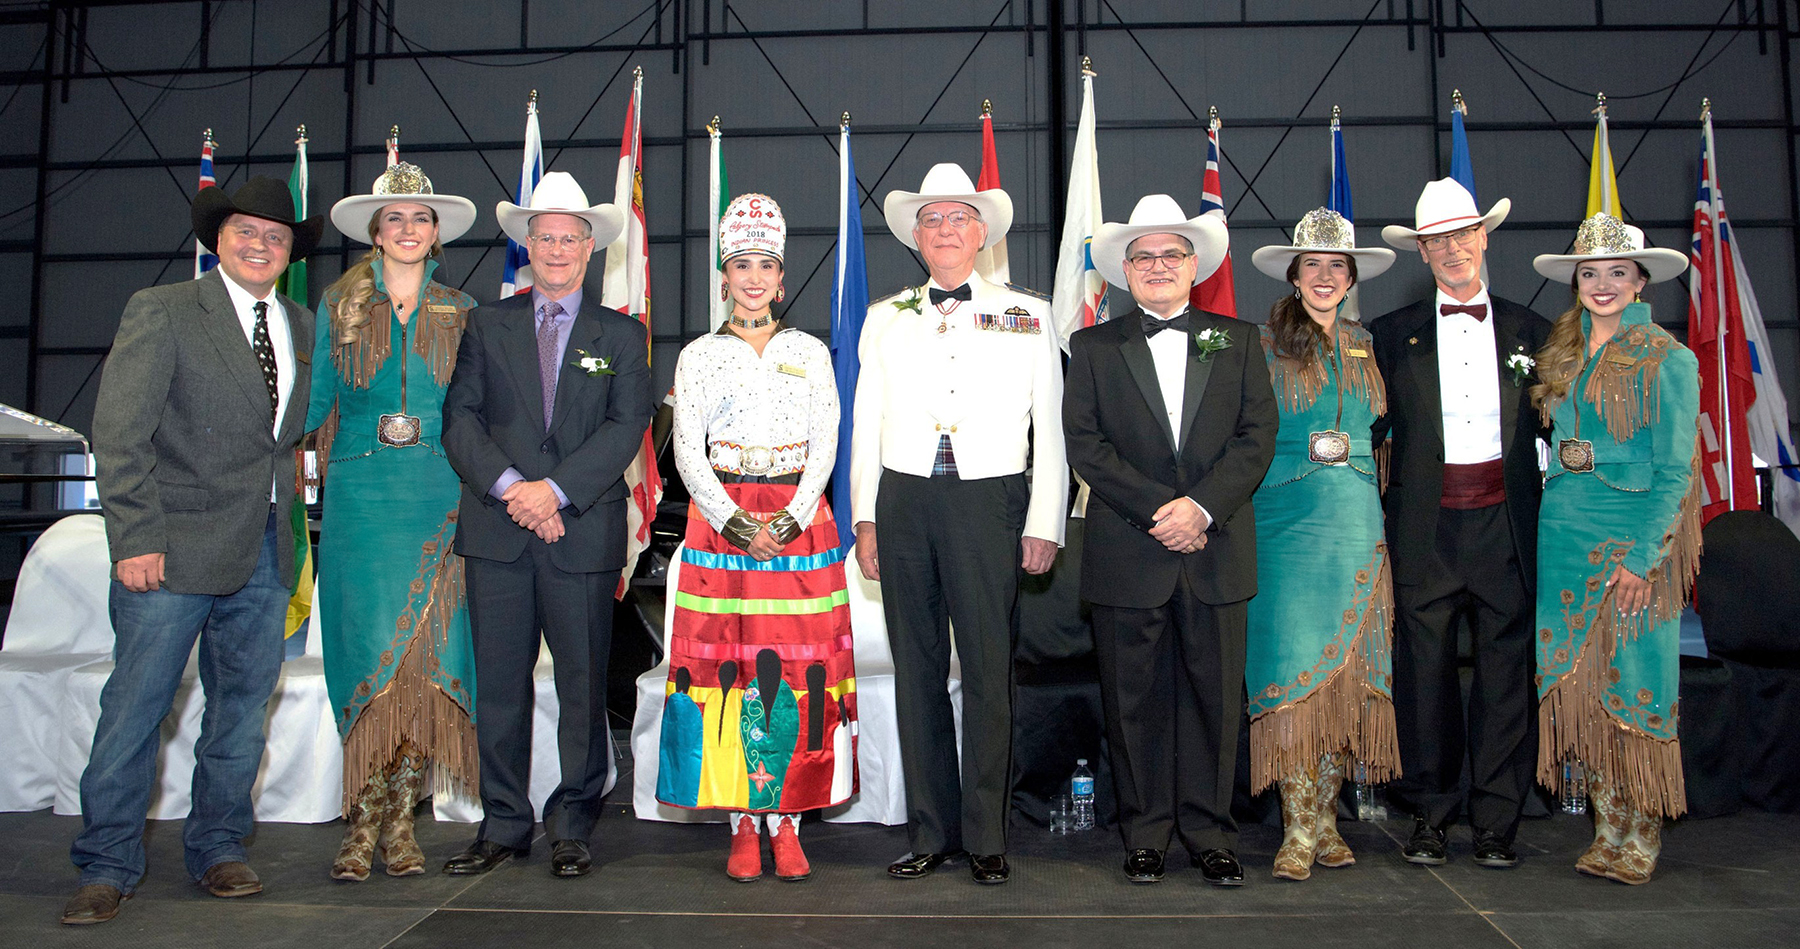 Wearing their newly received white Smithbilt cowboy hats, from left, Iain Bogie, representing his late father, John Bogie; Paul Manson; John Maris; and Greg Powell stand with the Calgary Stampede Queen and Princesses, and the Stampede vice-president Steve McDonough (far left). During the White Hat Ceremony, the CAHF inductees pledged to spread the Calgary brand of friendship and hospitality. PHOTO: Rick Radell